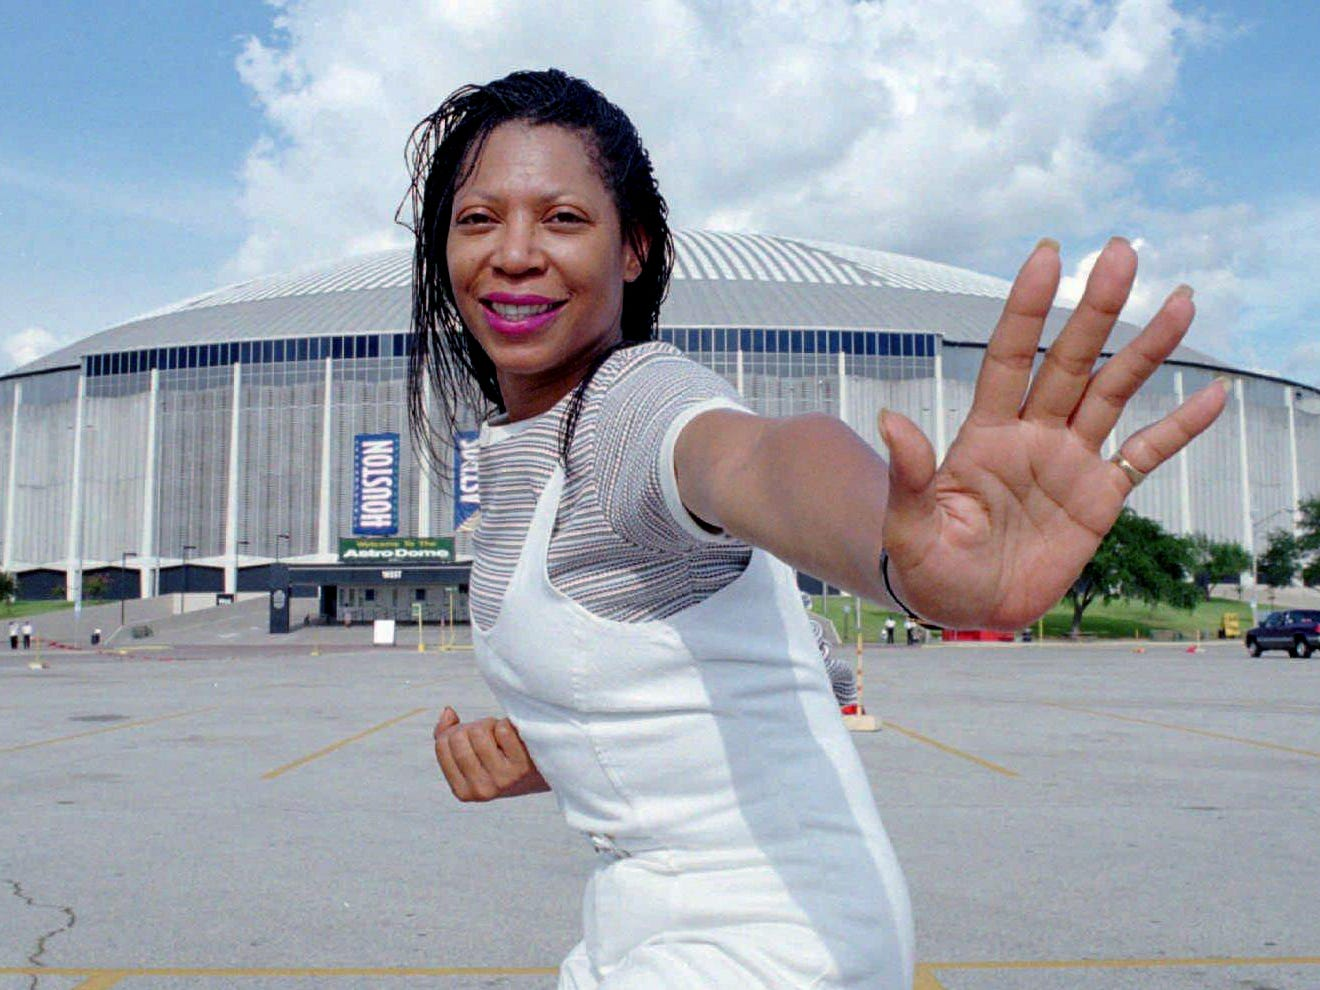 TWA flight attendant Donna George, posing on Aug. 8, 1996 in Houston, was scheduled to work TWA Flight 800 from New York to Paris on July 17 and stay for two days. Instead, George was persuaded to go to San Antonio on July 19 to see her son, Heisman Trophy winner Eddie George, sign a five-year contract with the Houston Oilers.